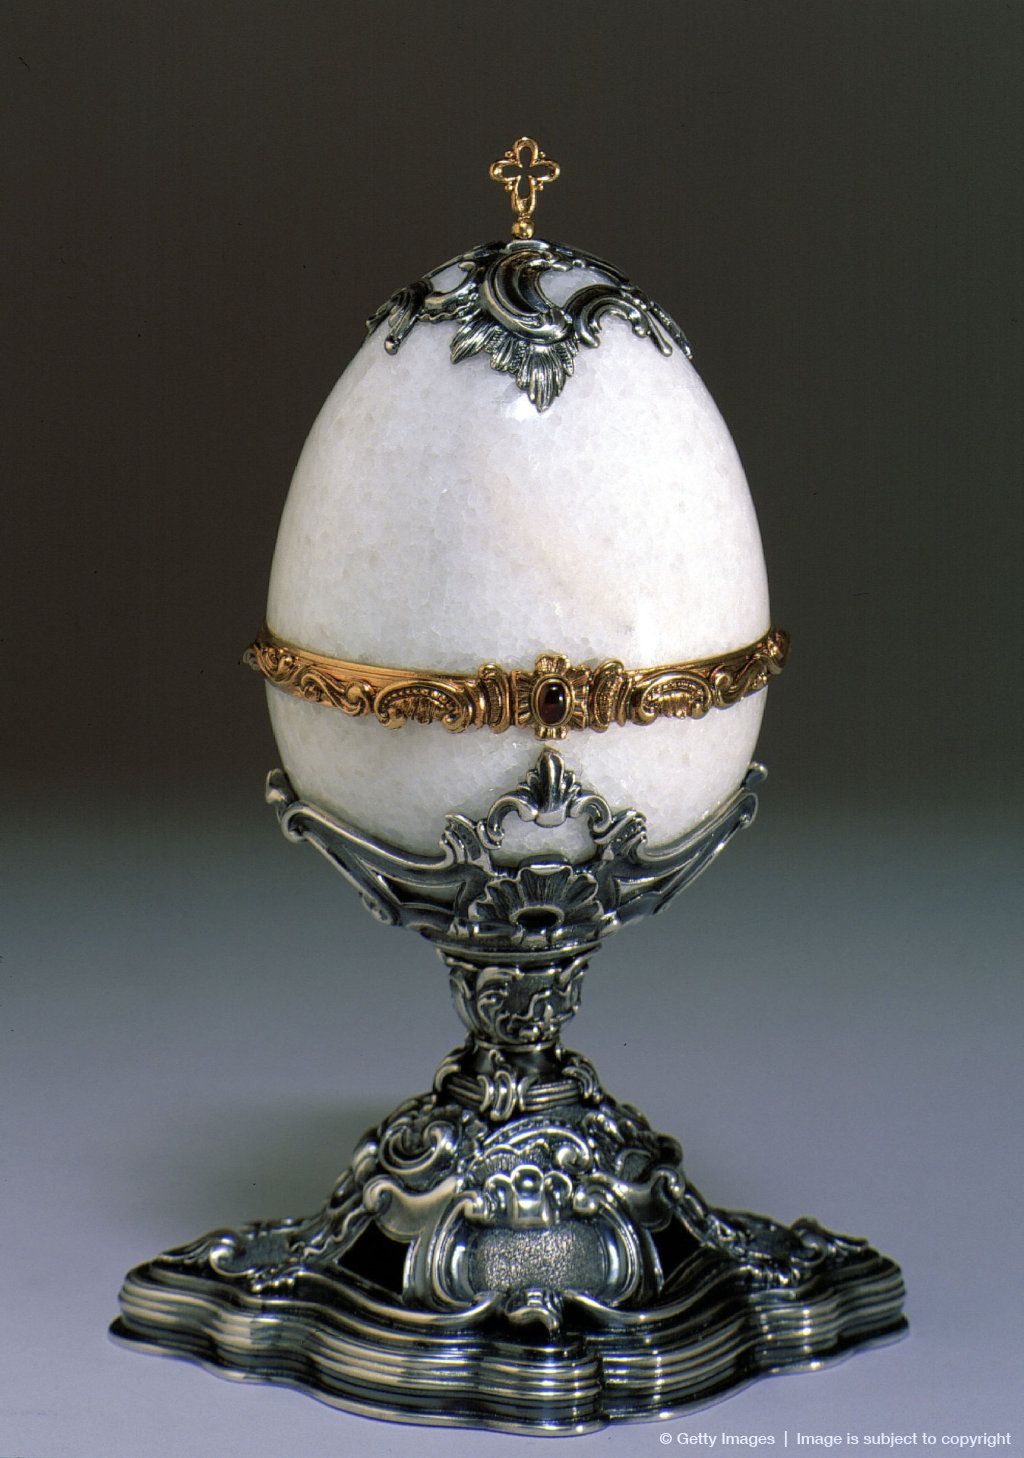 Faberge Egg from the Kremlin Museum collection in Moscow,